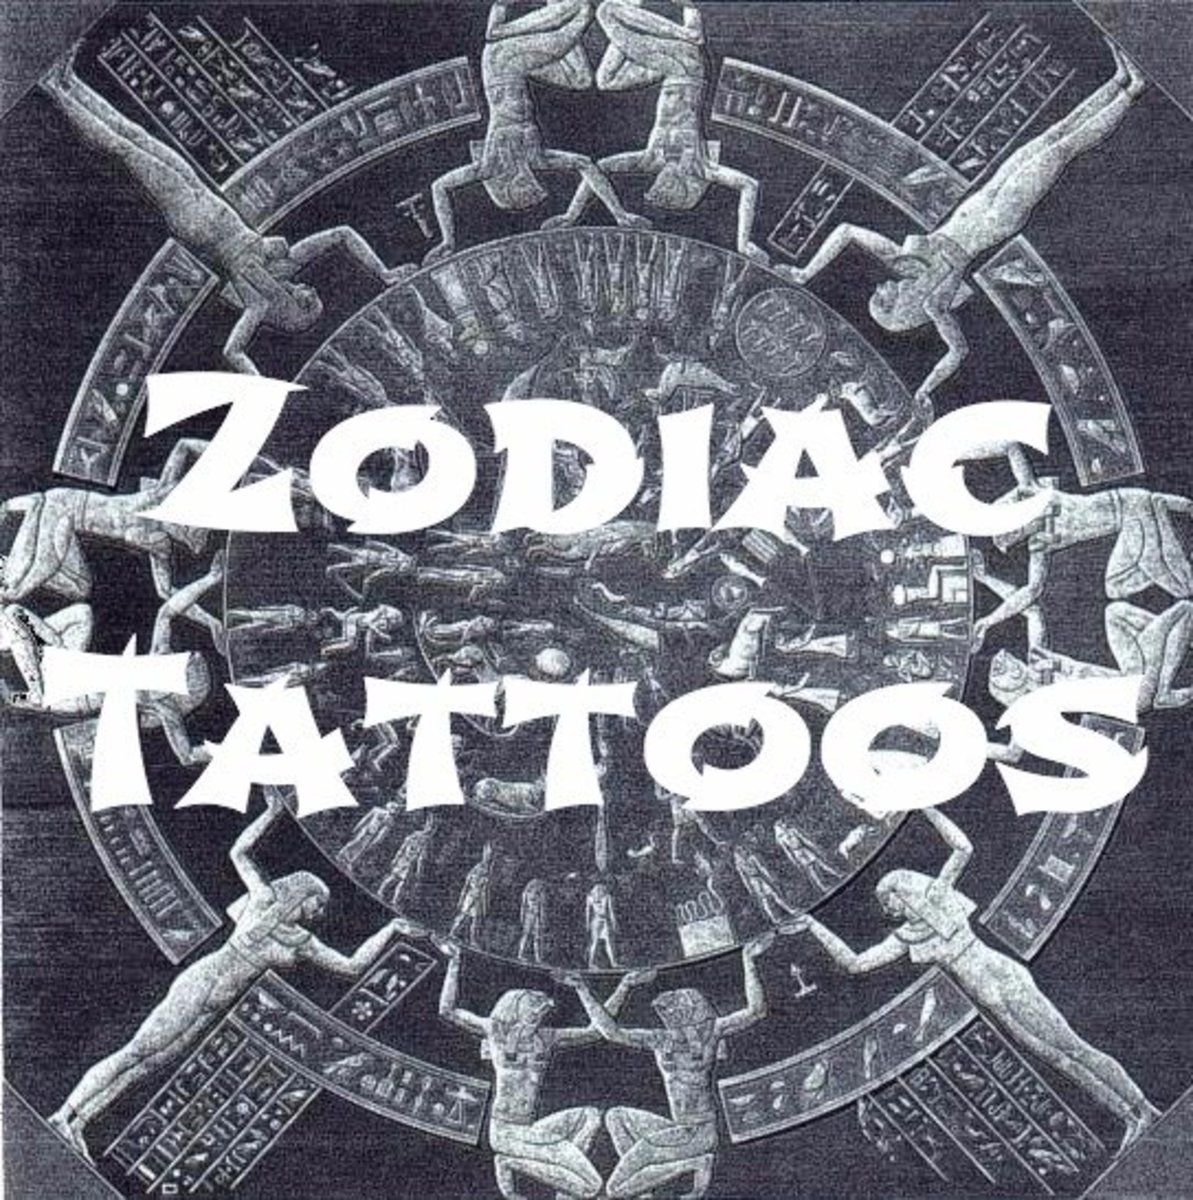 Western  Chinese Zodiac Astrology Tattoos Meanings  Design Ideas